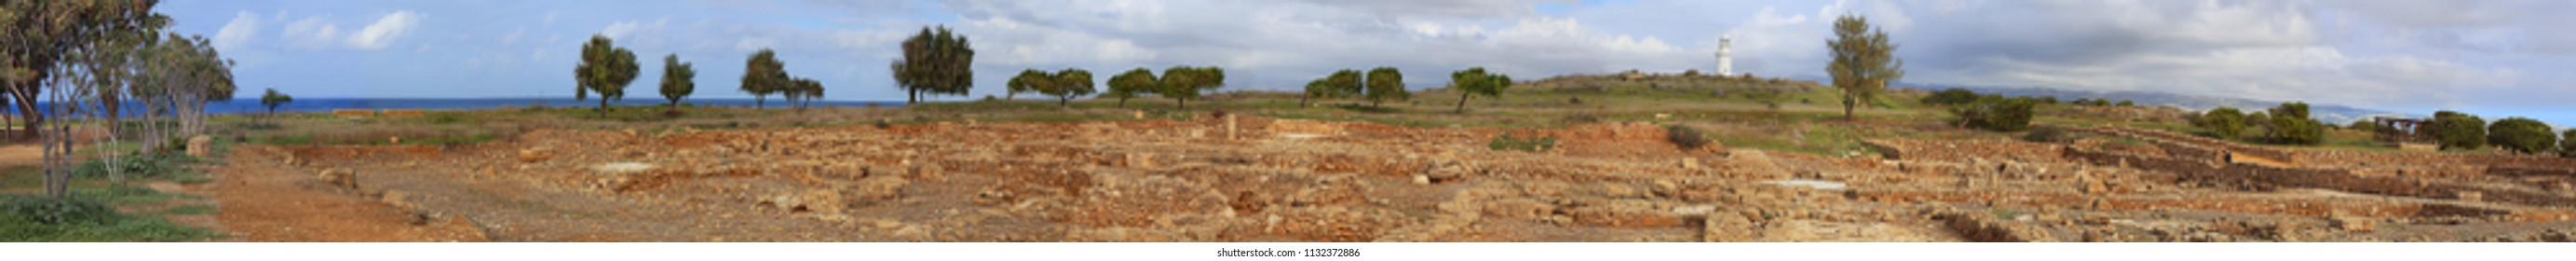 Archaeological park of Kato Paphos. Panorama of ancient ruins overlooking the lighthouse and the sea.